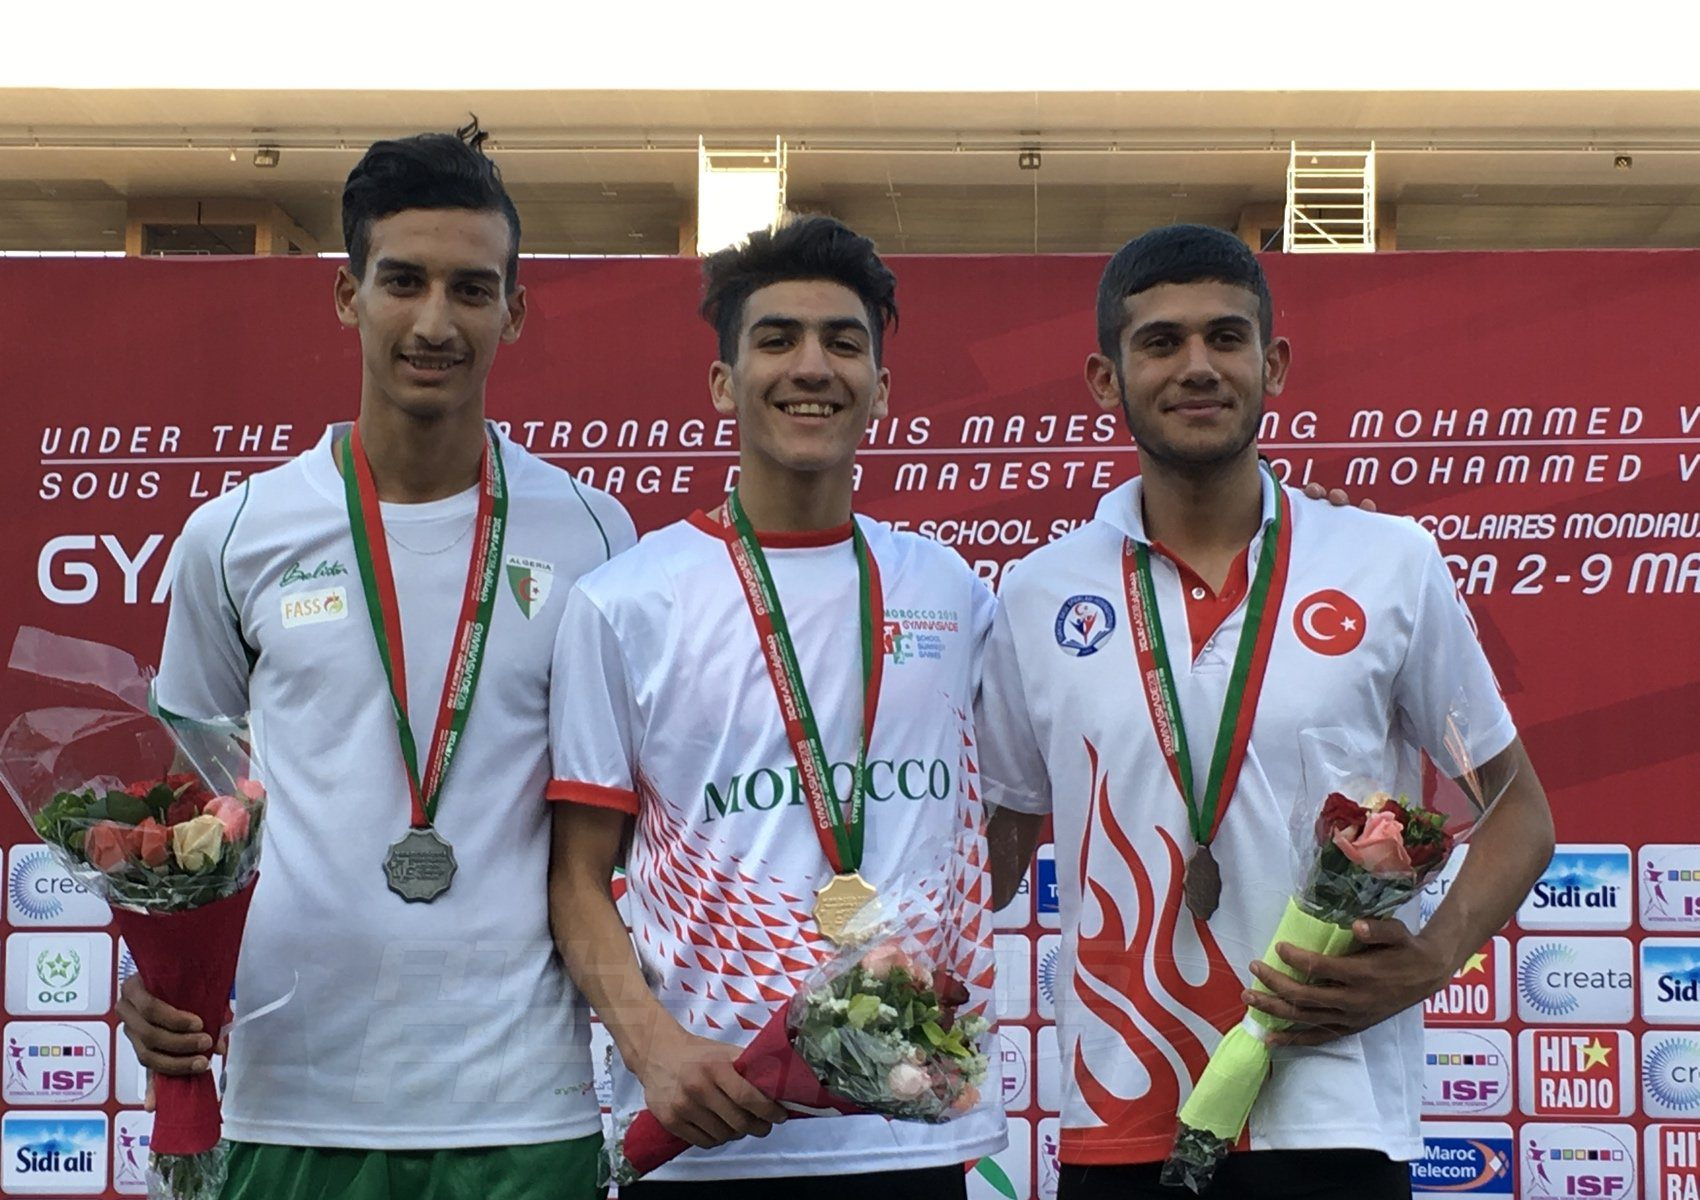 Fouad Messoudi (MAR) Hamdani Benahmed (TUN) and Tarik Demir (TUR) on the podium for Boys 1500m presentation at the Gymnasiade 2018 in Marrakech / Photo Credit: Yomi Omogbeja